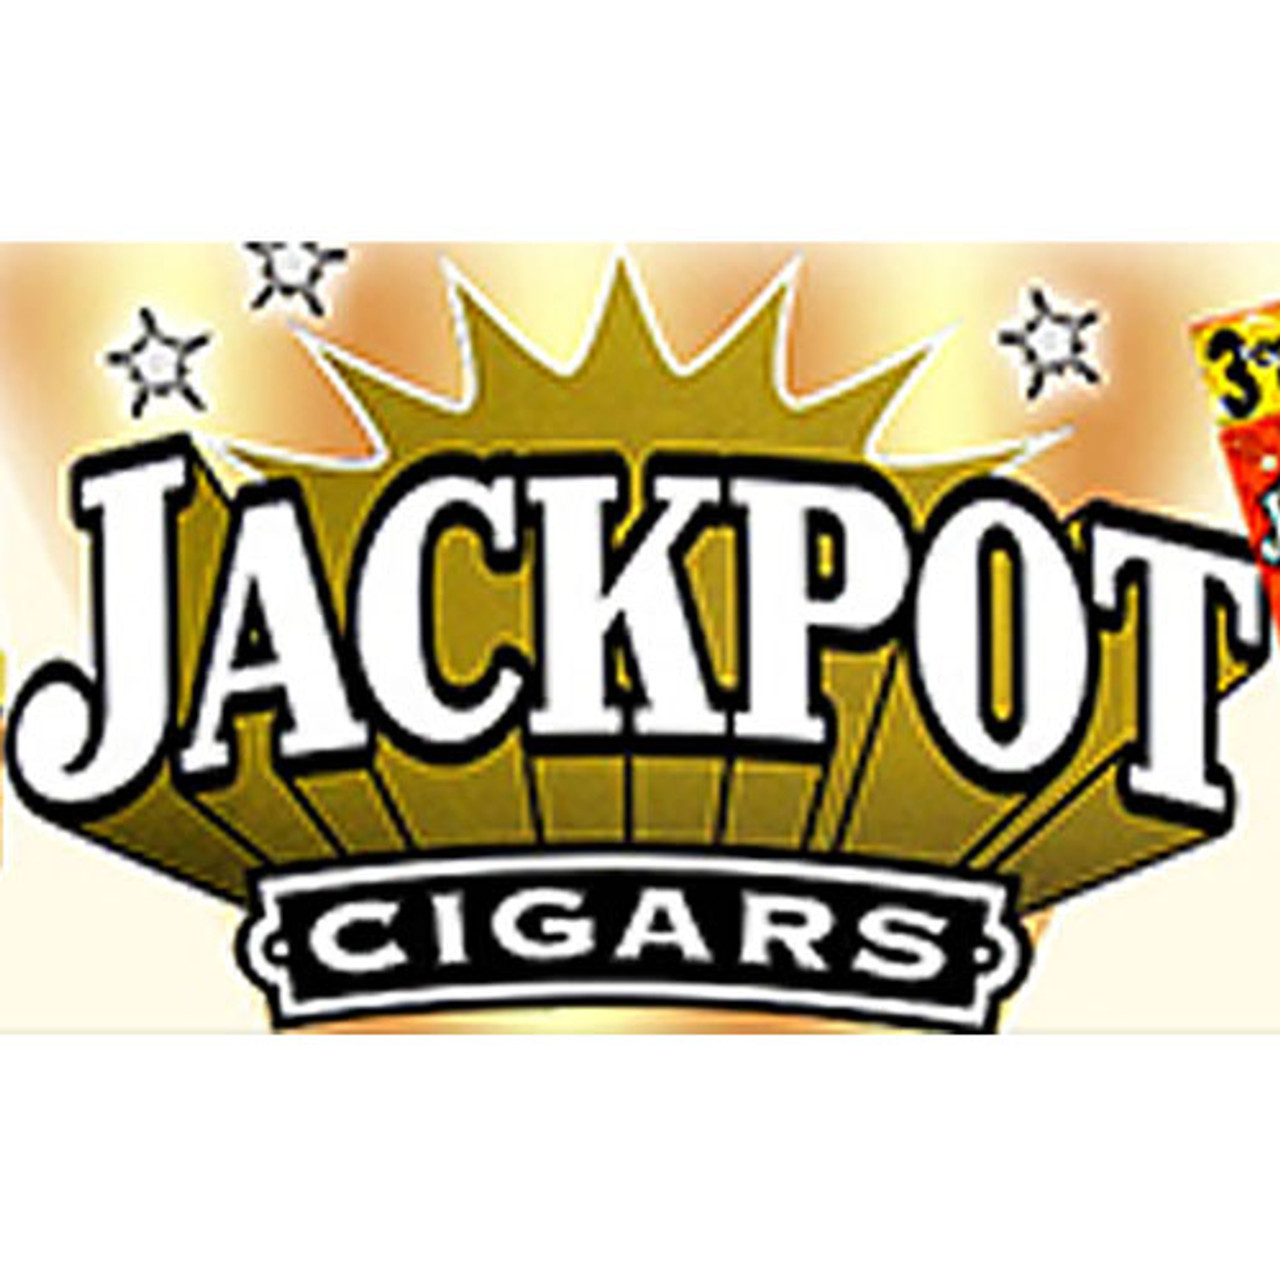 Jackpot Cigarillo Cherry Cigars - 4.69 x 28 (15 Packs of 3 (45 Total))